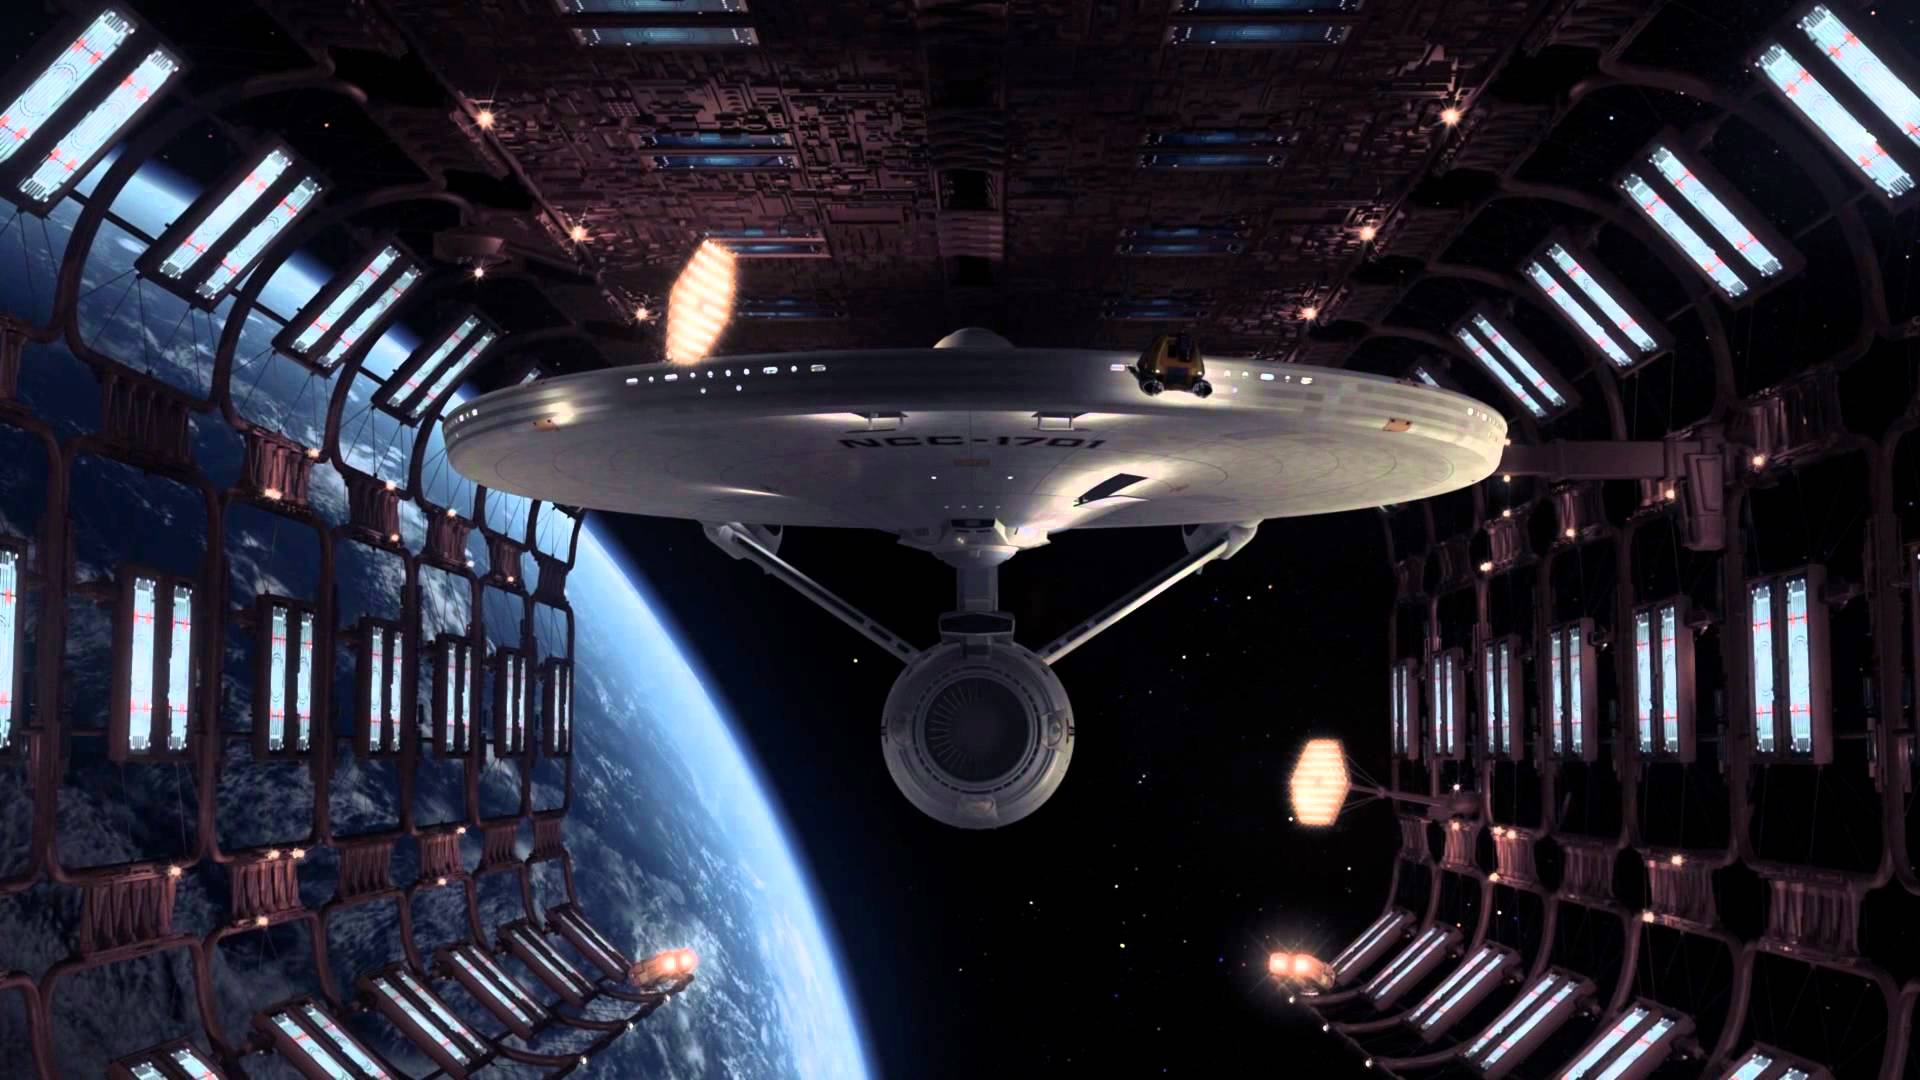 The newly refurbished Enterprise in spacedock in Star Trek - The Motion Picture (1979)